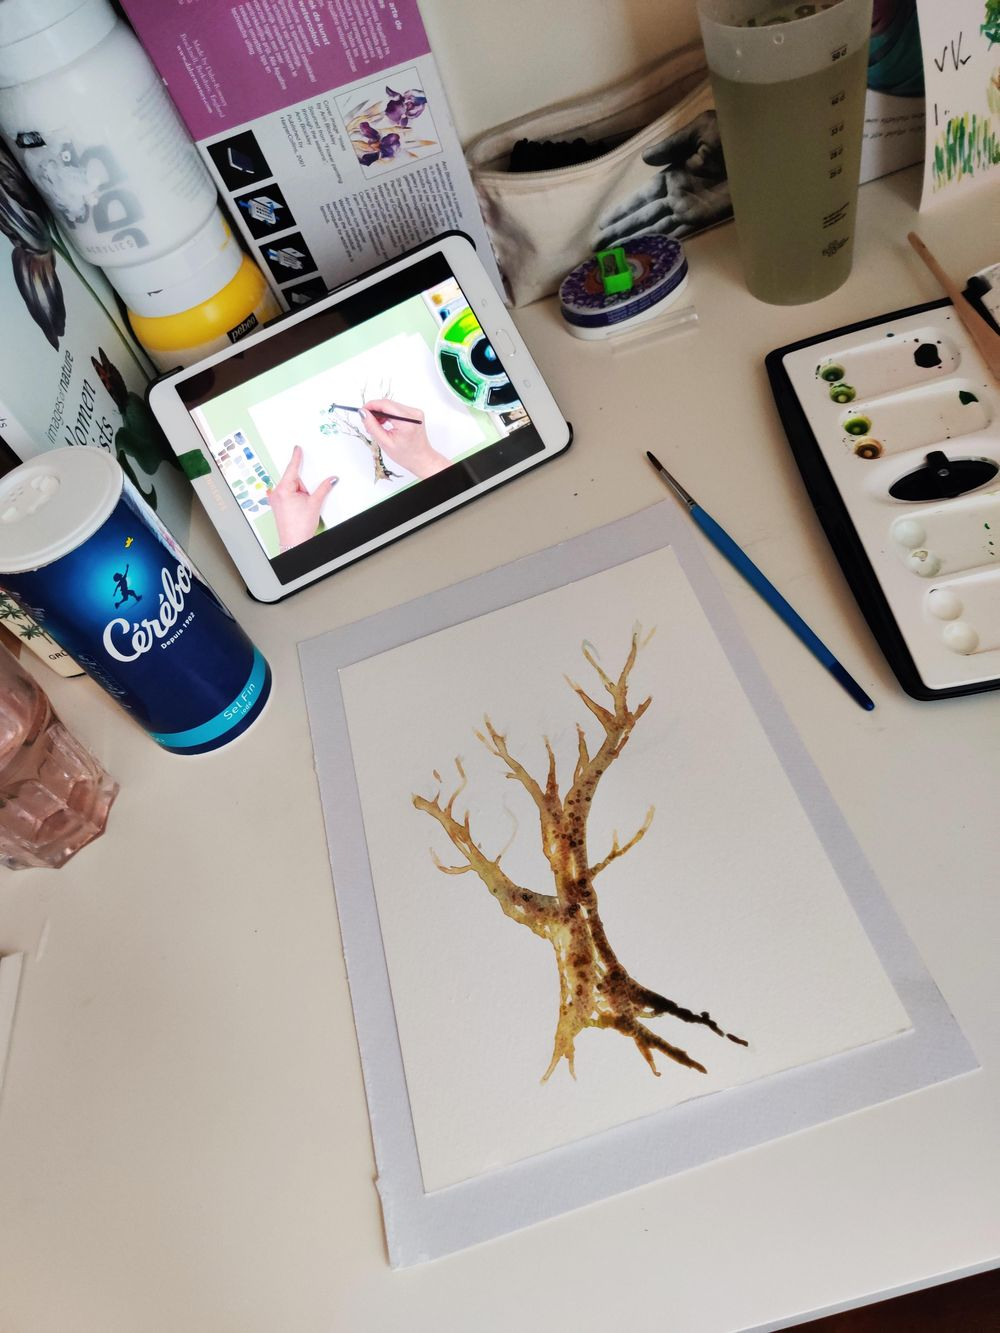 Practice tree : step by step - image 2 - student project